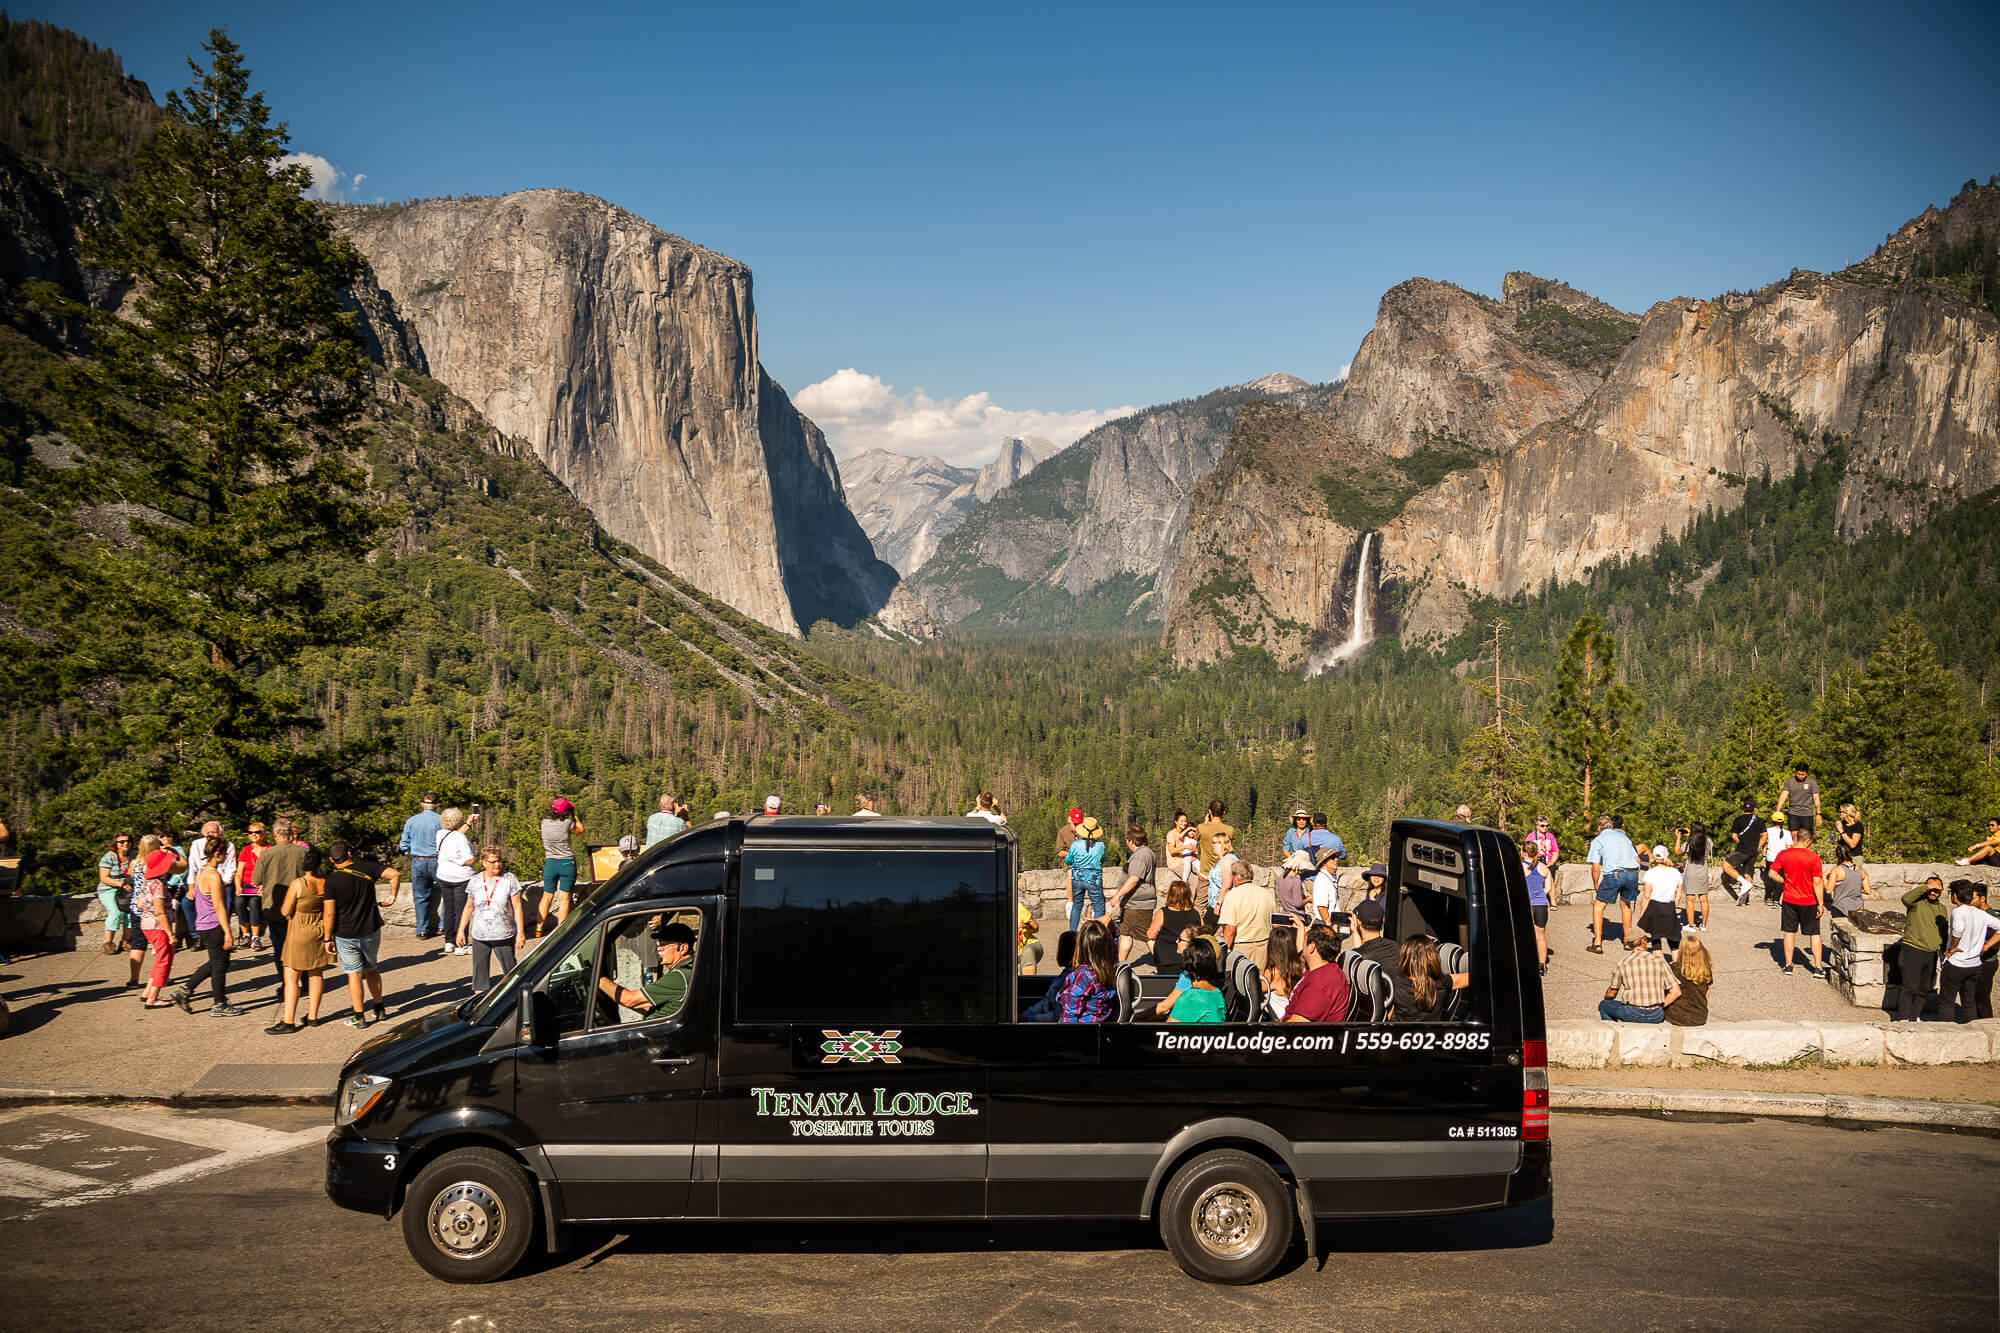 Tenaya Lodge Yosemite Tours - See It All In A Day!